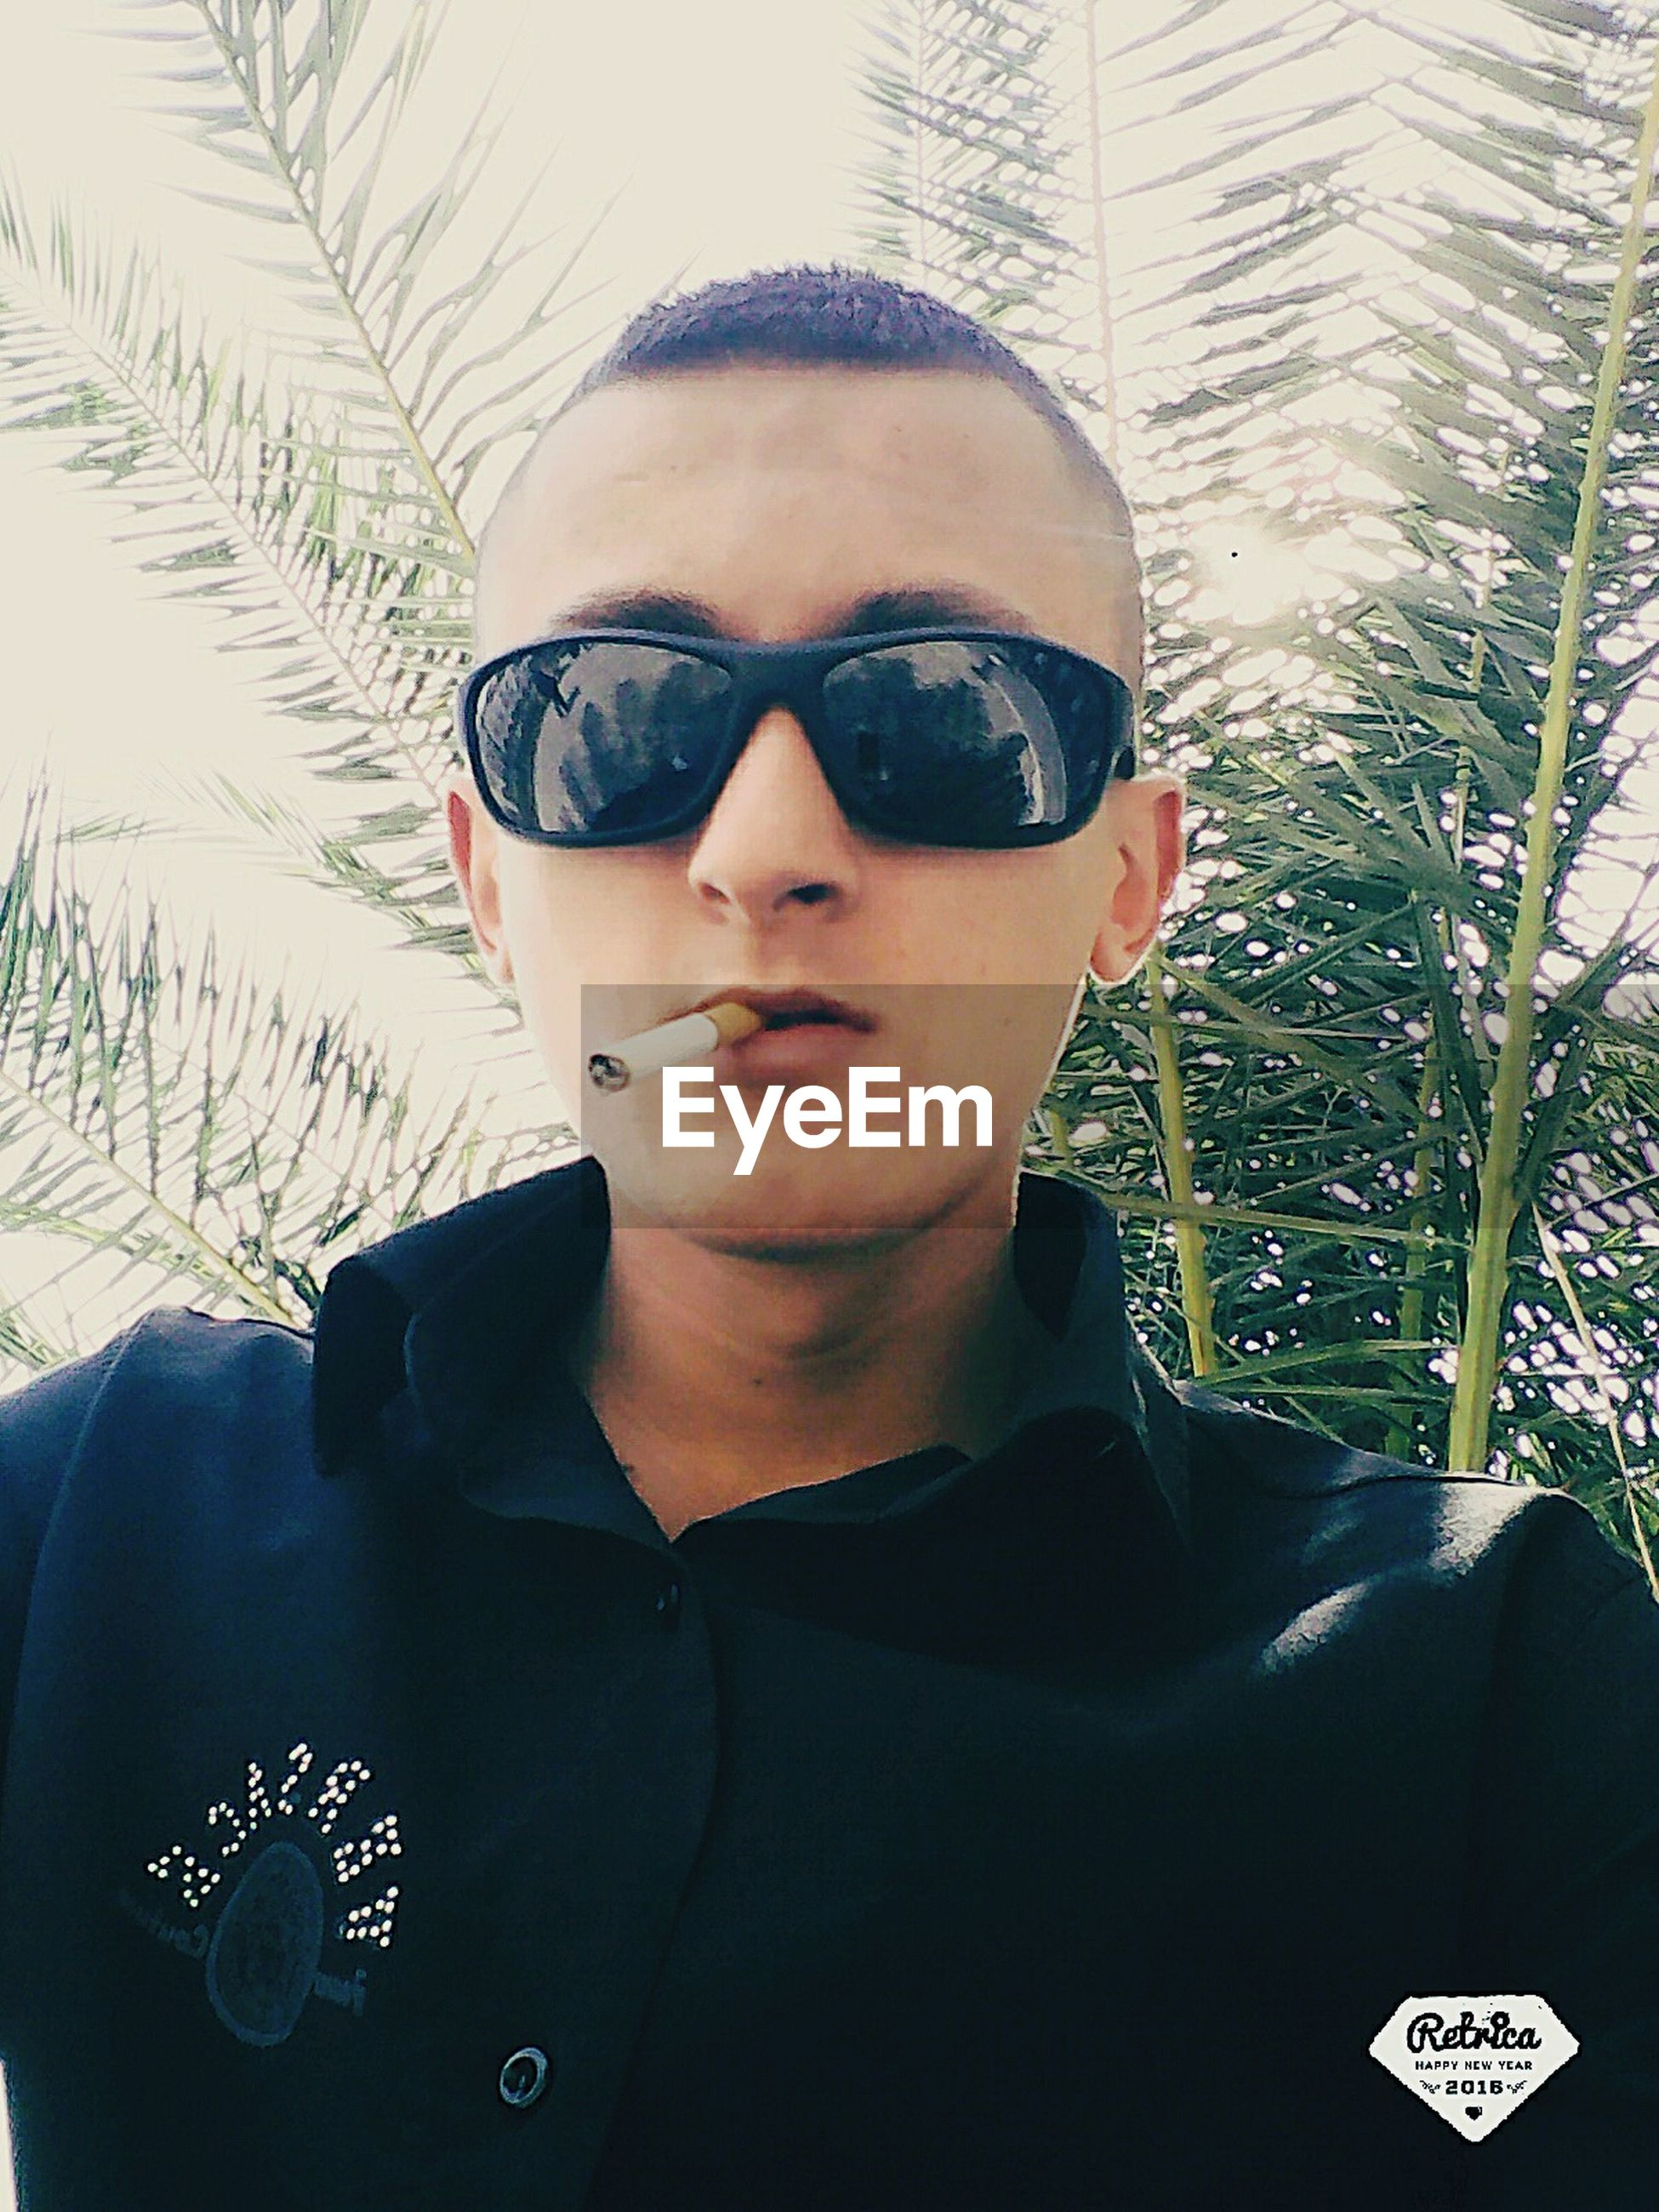 sunglasses, young adult, lifestyles, leisure activity, young men, looking at camera, person, headshot, portrait, front view, communication, eyeglasses, photography themes, wireless technology, photographing, head and shoulders, technology